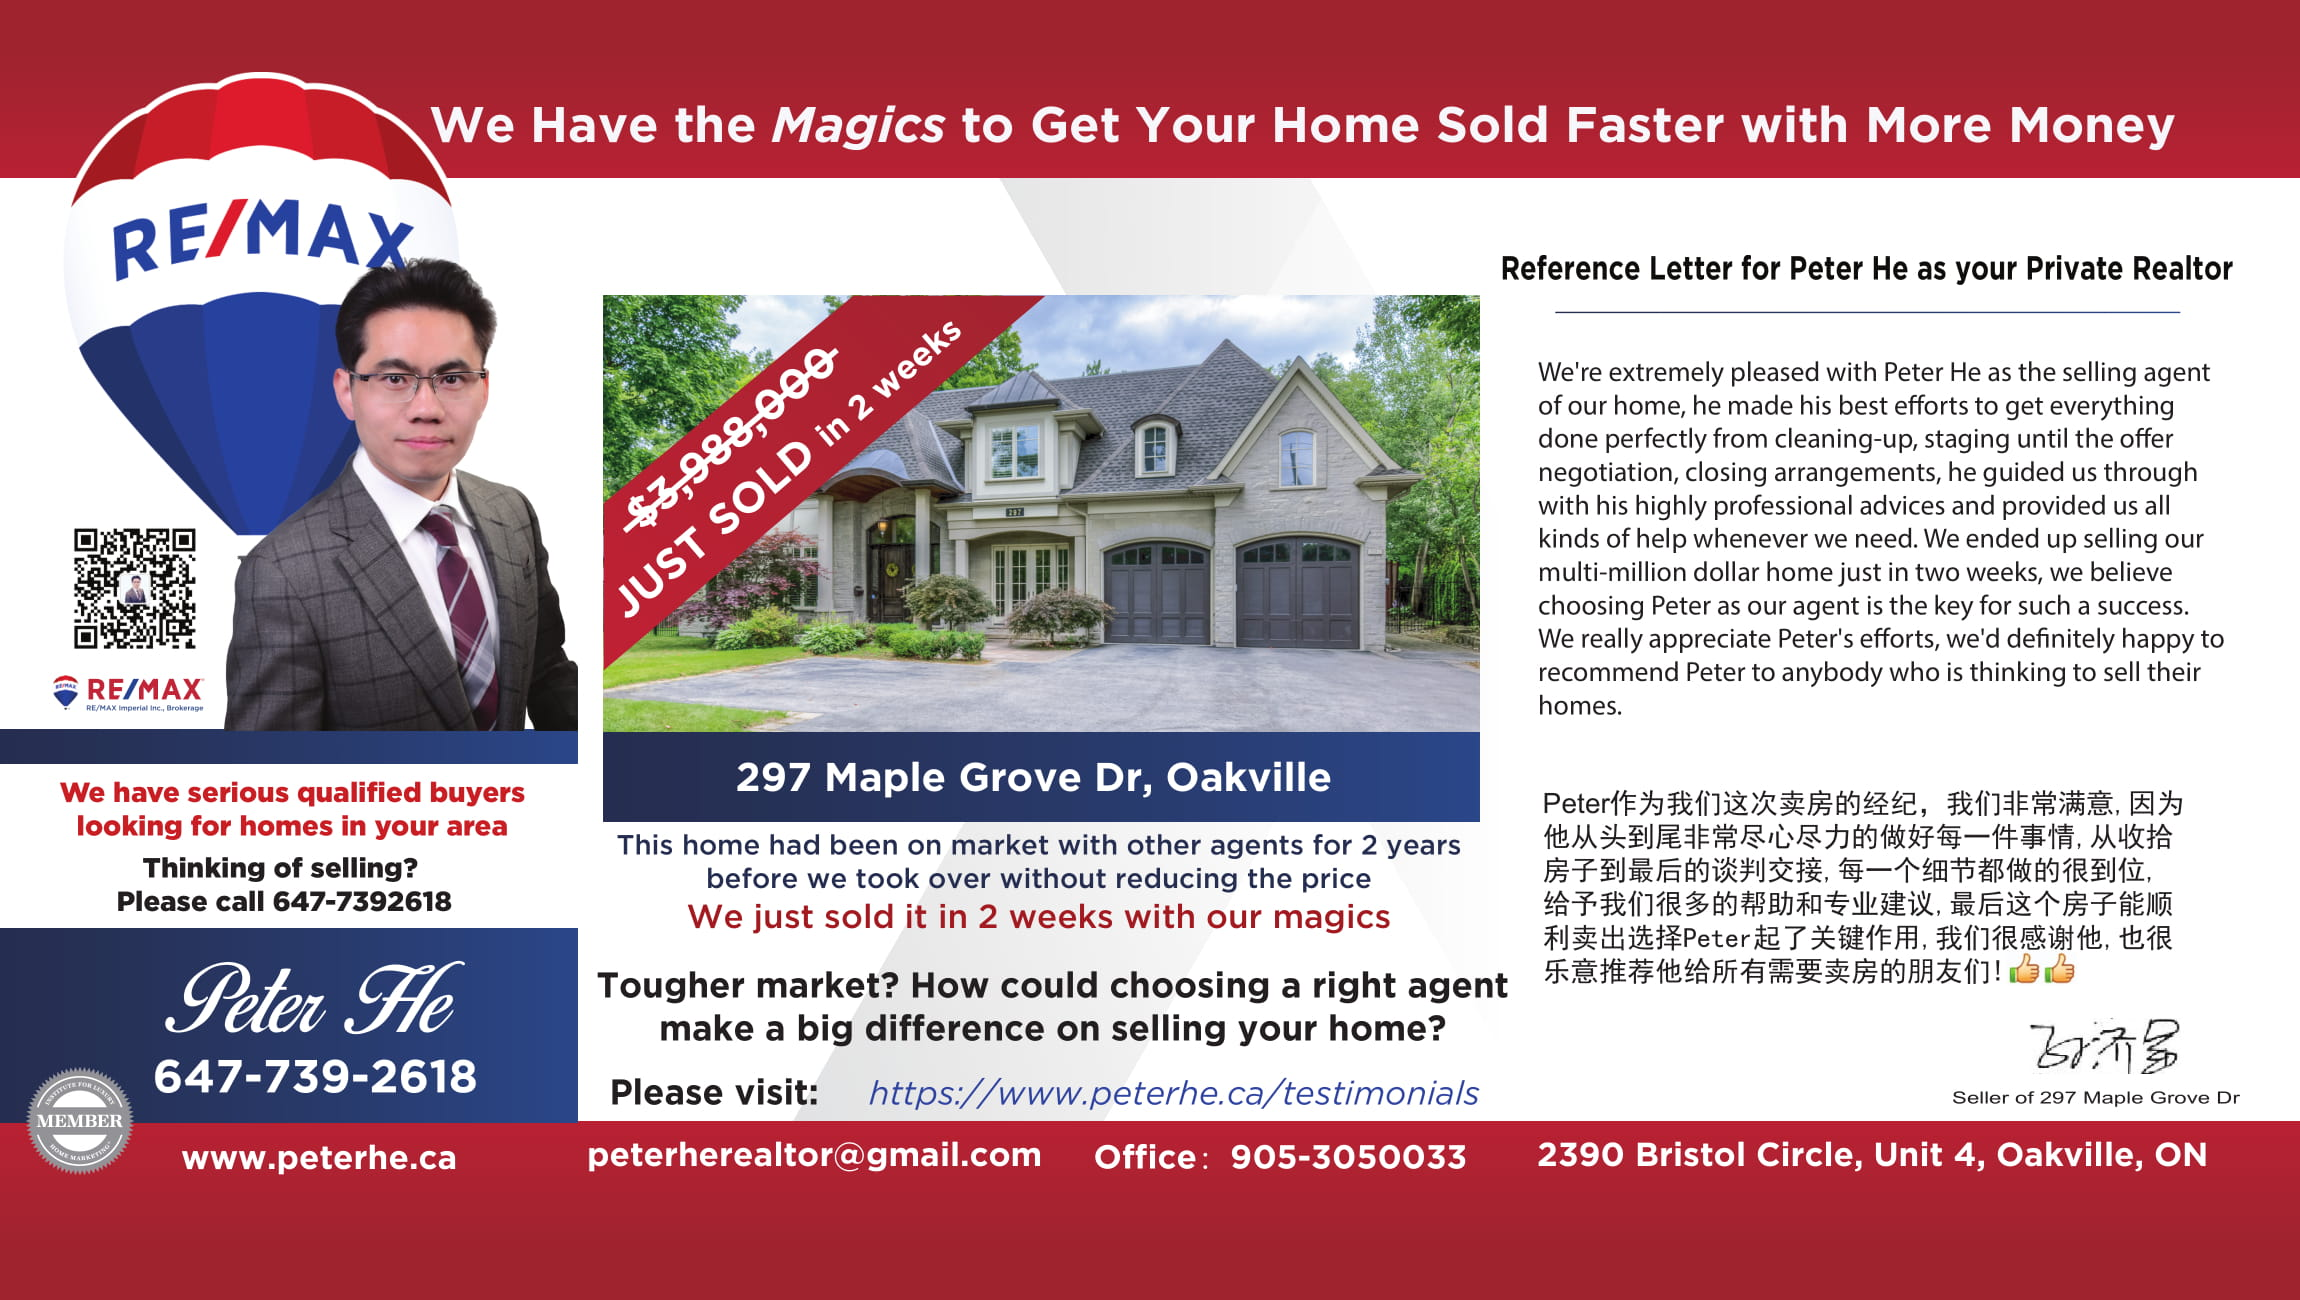 Peter He just sold-297 maple grove Flyer front 10.07-final-1.jpg